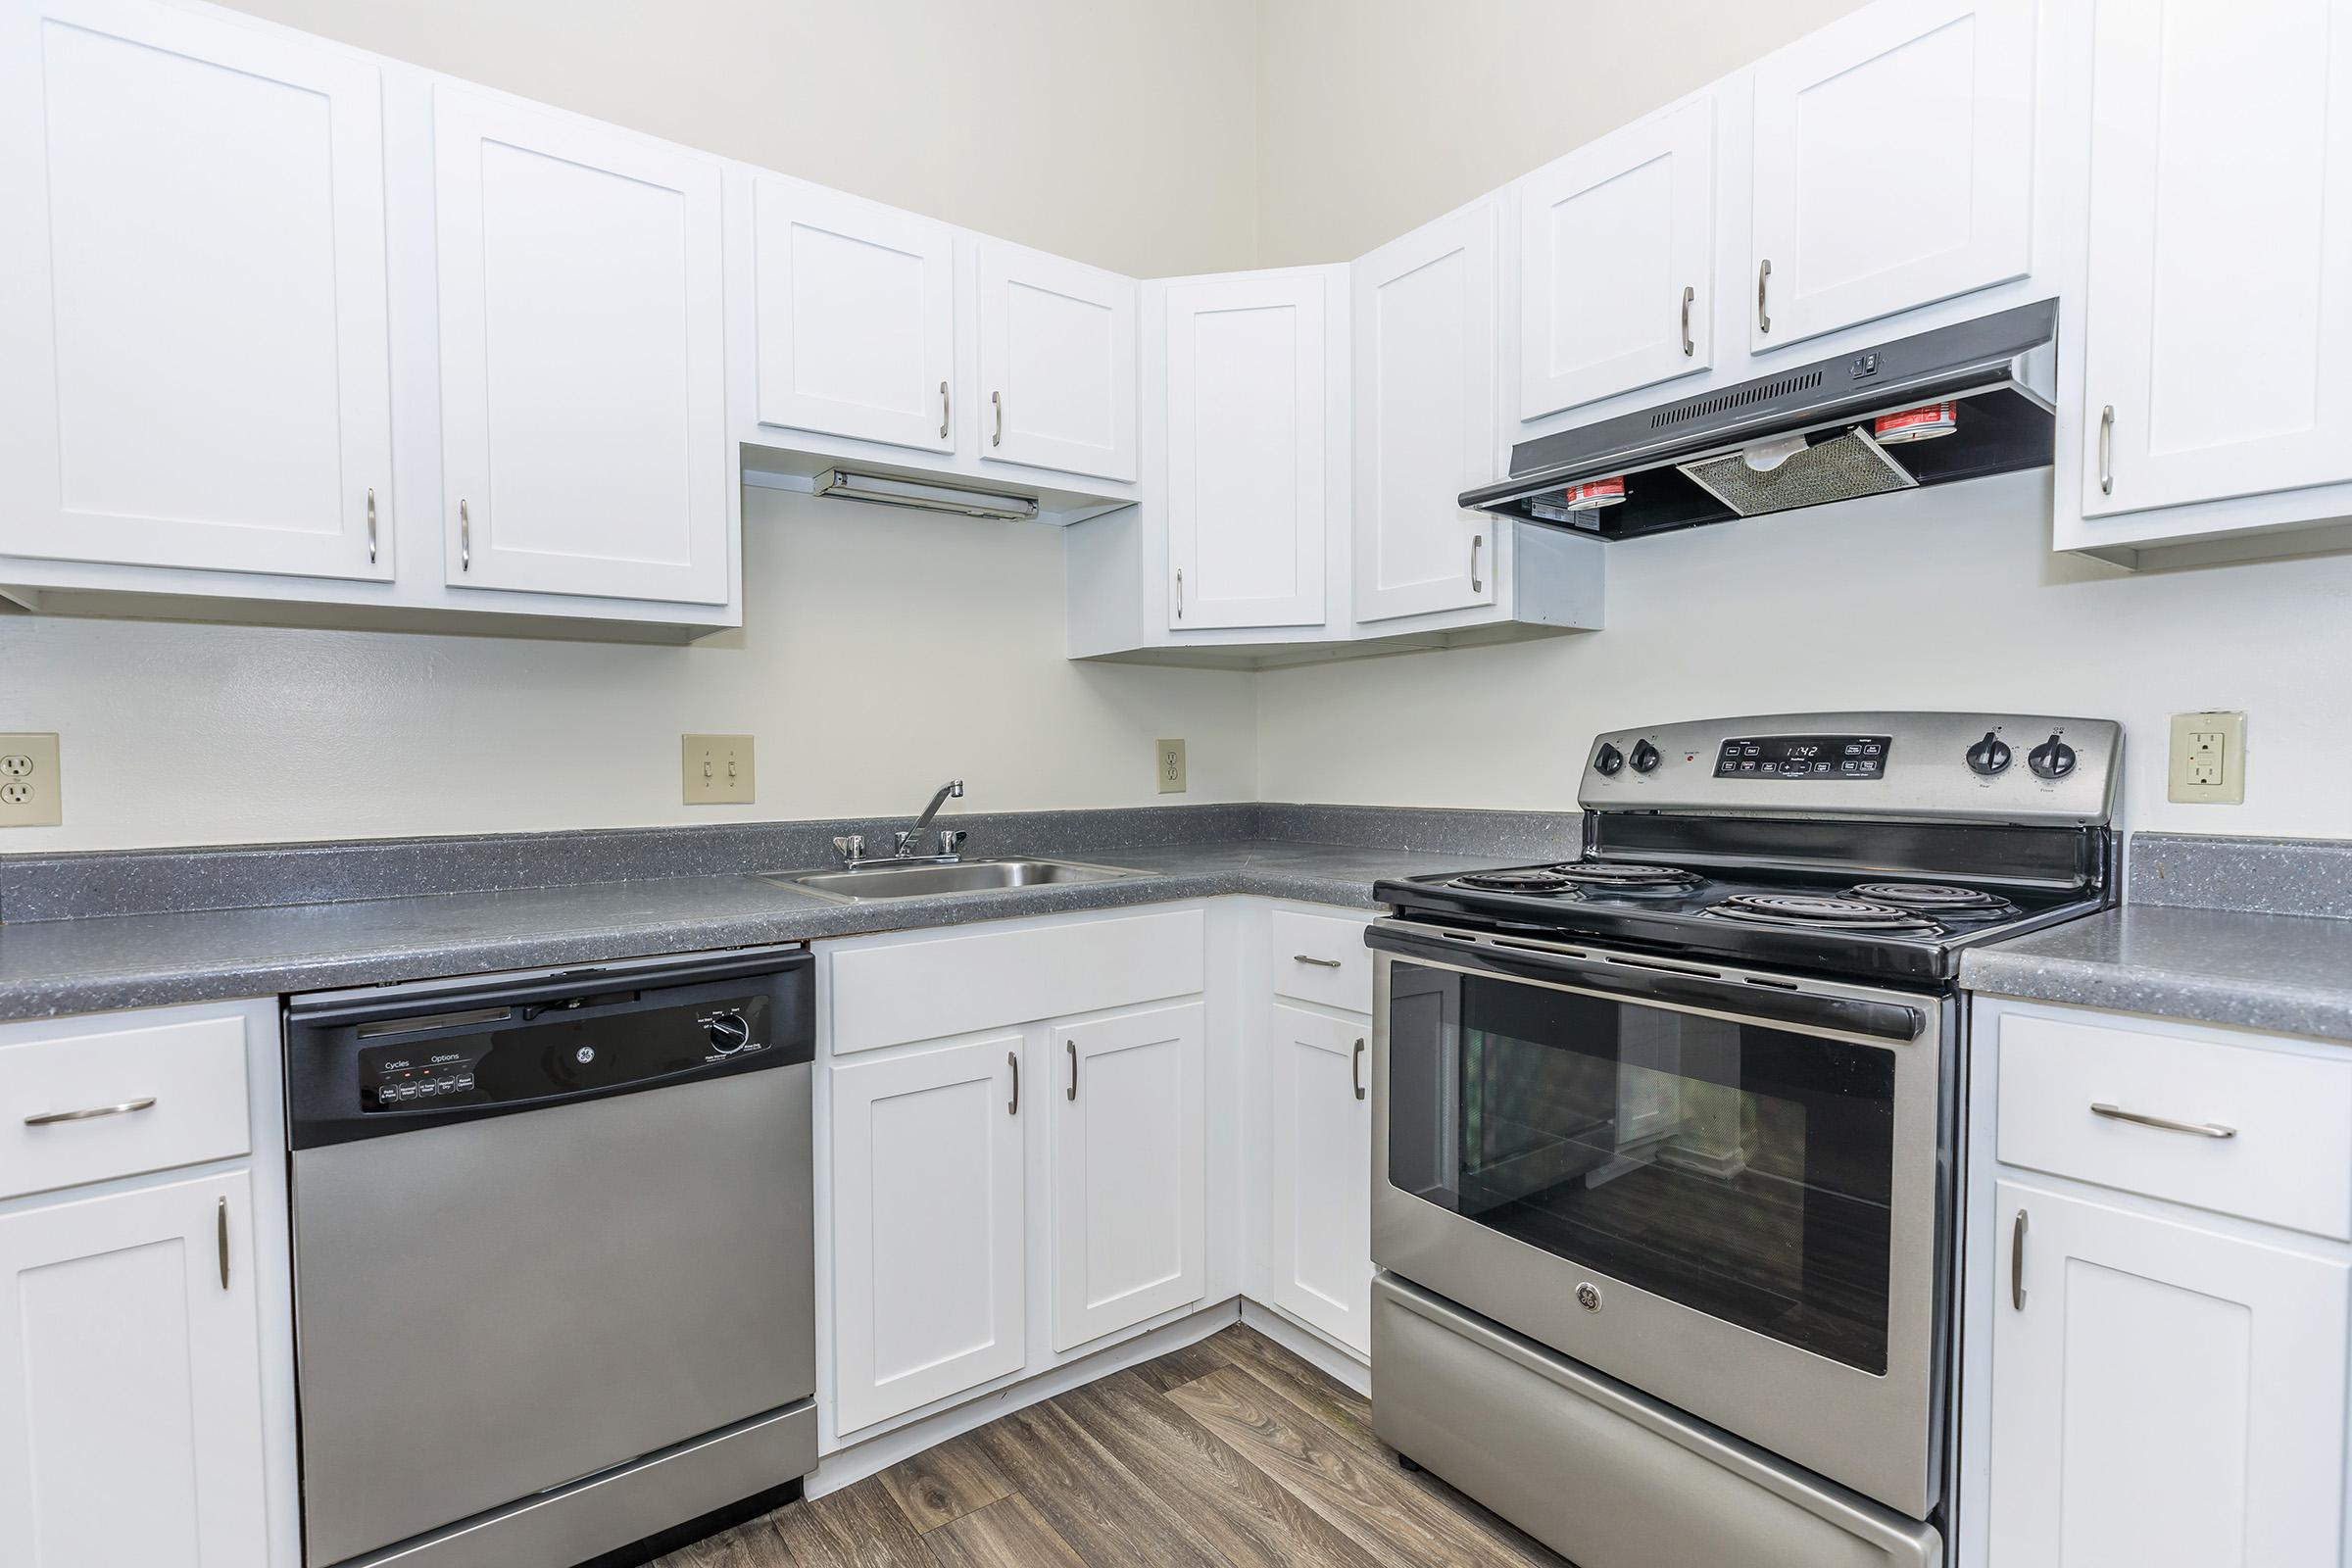 WELL-EQUIPPED KITCHENS AT OAKS AT HAMPTON APARTMENTS